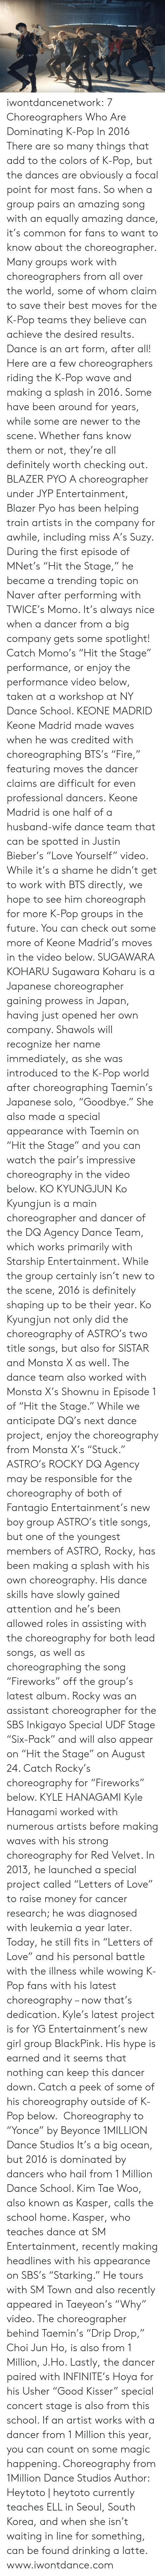 "Dominating: iwontdancenetwork:    7 Choreographers Who Are Dominating K-Pop In 2016  There are so many things that add to the colors of K-Pop, but the  dances are obviously a focal point for most fans. So when a group pairs  an amazing song with an equally amazing dance, it's common for fans to  want to know about the choreographer. Many groups work with  choreographers from all over the world, some of whom claim to save their  best moves for the K-Pop teams they believe can achieve the desired  results. Dance is an art form, after all! Here are a few choreographers riding the K-Pop wave and making a  splash in 2016. Some have been around for years, while some are newer to  the scene. Whether fans know them or not, they're all definitely worth  checking out. BLAZER PYO  A choreographer under JYP Entertainment, Blazer Pyo has been helping  train artists in the company for awhile, including miss A's Suzy. During  the first episode of MNet's ""Hit the Stage,"" he became a trending topic  on Naver after performing with TWICE's Momo. It's always nice when a  dancer from a big company gets some spotlight! Catch Momo's ""Hit the  Stage"" performance, or enjoy the performance video below, taken at a  workshop at NY Dance School.  KEONE MADRID  Keone Madrid made waves when he was credited with choreographing BTS's  ""Fire,"" featuring moves the dancer claims are difficult for even  professional dancers. Keone Madrid is one half of a husband-wife dance  team that can be spotted in Justin Bieber's ""Love Yourself"" video. While  it's a shame he didn't get to work with BTS directly, we hope to see  him choreograph for more K-Pop groups in the future. You can check out  some more of Keone Madrid's moves in the video below.   SUGAWARA KOHARU  Sugawara Koharu is a Japanese choreographer gaining prowess in Japan,  having just opened her own company. Shawols will recognize her name  immediately, as she was introduced to the K-Pop world after  choreographing Taemin's Japanese solo, ""Goodbye."" She also made a  special appearance with Taemin on ""Hit the Stage"" and you can watch the  pair's impressive choreography in the video below.   KO KYUNGJUN  Ko Kyungjun is a main choreographer and dancer of the DQ Agency Dance  Team, which works primarily with Starship Entertainment. While the group  certainly isn't new to the scene, 2016 is definitely shaping up to be  their year. Ko Kyungjun not only did the choreography of ASTRO's two  title songs, but also for SISTAR and Monsta X as well. The dance team  also worked with Monsta X's Shownu in Episode 1 of ""Hit the Stage.""  While we anticipate DQ's next dance project, enjoy the choreography from  Monsta X's ""Stuck.""  ASTRO's ROCKY  DQ Agency may be responsible for the choreography of both of Fantagio  Entertainment's new boy group ASTRO's title songs, but one of the  youngest members of ASTRO, Rocky, has been making a splash with his own  choreography. His dance skills have slowly gained attention and he's  been allowed roles in assisting with the choreography for both lead  songs, as well as choreographing the song ""Fireworks"" off the group's  latest album. Rocky was an assistant choreographer for the SBS Inkigayo  Special UDF Stage ""Six-Pack"" and will also appear on ""Hit the Stage"" on  August 24. Catch Rocky's choreography for ""Fireworks"" below.  KYLE HANAGAMI  Kyle Hanagami worked with numerous artists before making waves with his  strong choreography for Red Velvet. In 2013, he launched a special  project called ""Letters of Love"" to raise money for cancer research; he  was diagnosed with leukemia a year later. Today, he still fits in  ""Letters of Love"" and his personal battle with the illness while wowing  K-Pop fans with his latest choreography – now that's dedication. Kyle's  latest project is for YG Entertainment's new girl group BlackPink. His  hype is earned and it seems that nothing can keep this dancer down.  Catch a peek of some of his choreography outside of K-Pop below.  Choreography to ""Yonce"" by Beyonce 1MILLION Dance Studios  It's a big ocean, but 2016 is dominated by dancers who hail from 1  Million Dance School. Kim Tae Woo, also known as Kasper, calls the  school home. Kasper, who teaches dance at SM Entertainment, recently  making headlines with his appearance on SBS's ""Starking."" He tours with  SM Town and also recently appeared in Taeyeon's  ""Why"" video. The choreographer behind Taemin's ""Drip Drop,"" Choi Jun  Ho, is also from 1 Million, J.Ho. Lastly, the dancer paired with  INFINITE's Hoya for his Usher ""Good Kisser"" special concert stage is  also from this school. If an artist works with a dancer from 1 Million  this year, you can count on some magic happening.  Choreography from 1Million Dance Studios Author: Heytoto 